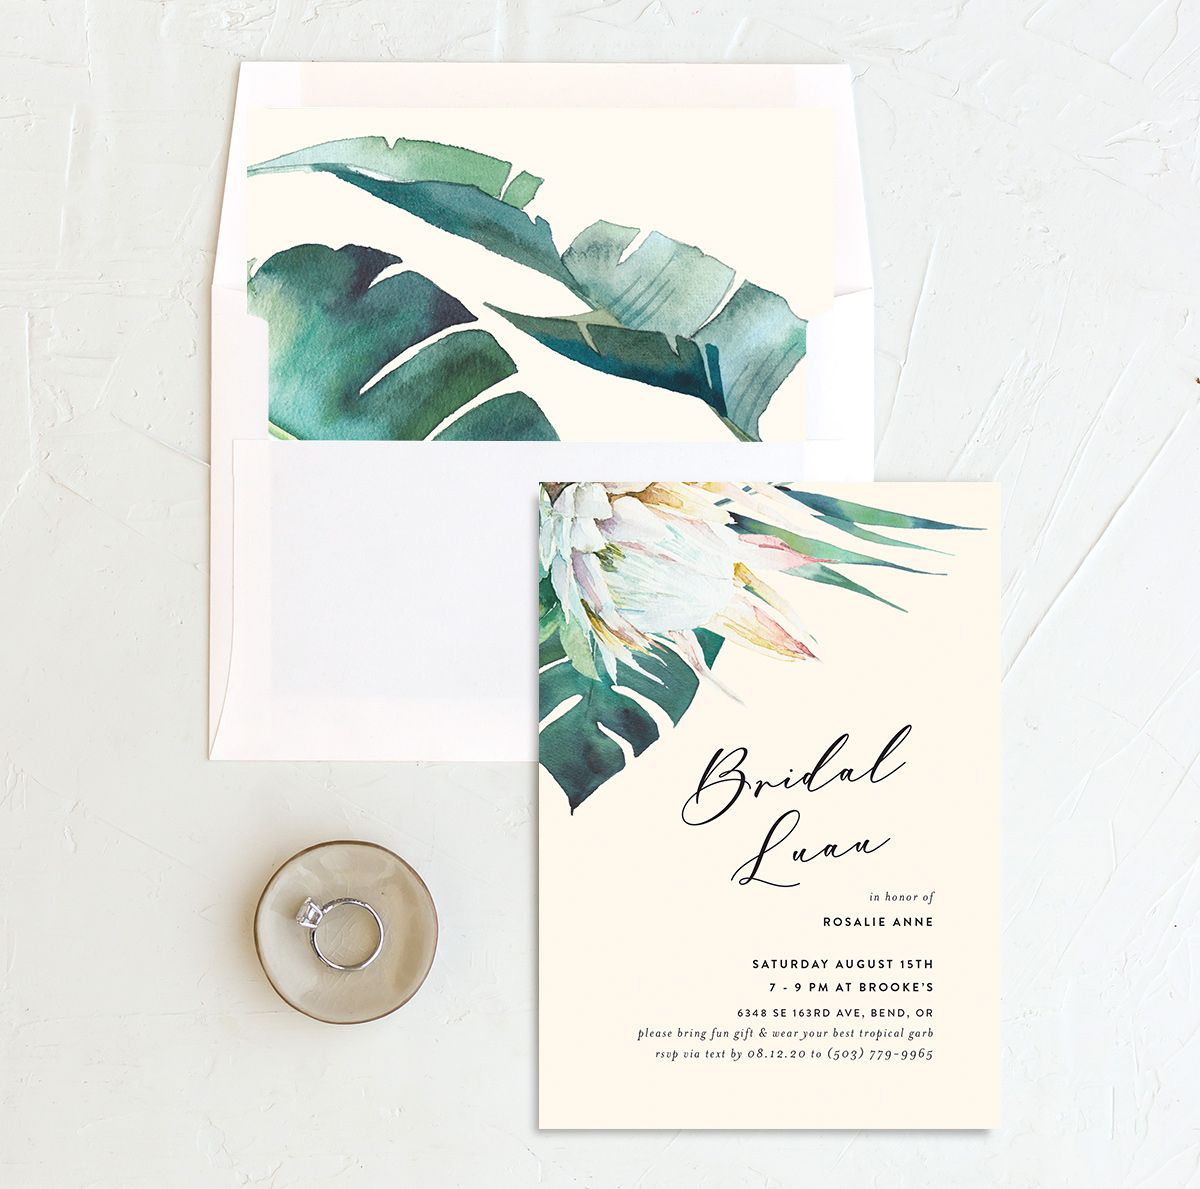 Palm and Protea Bridal Luau invites with liner